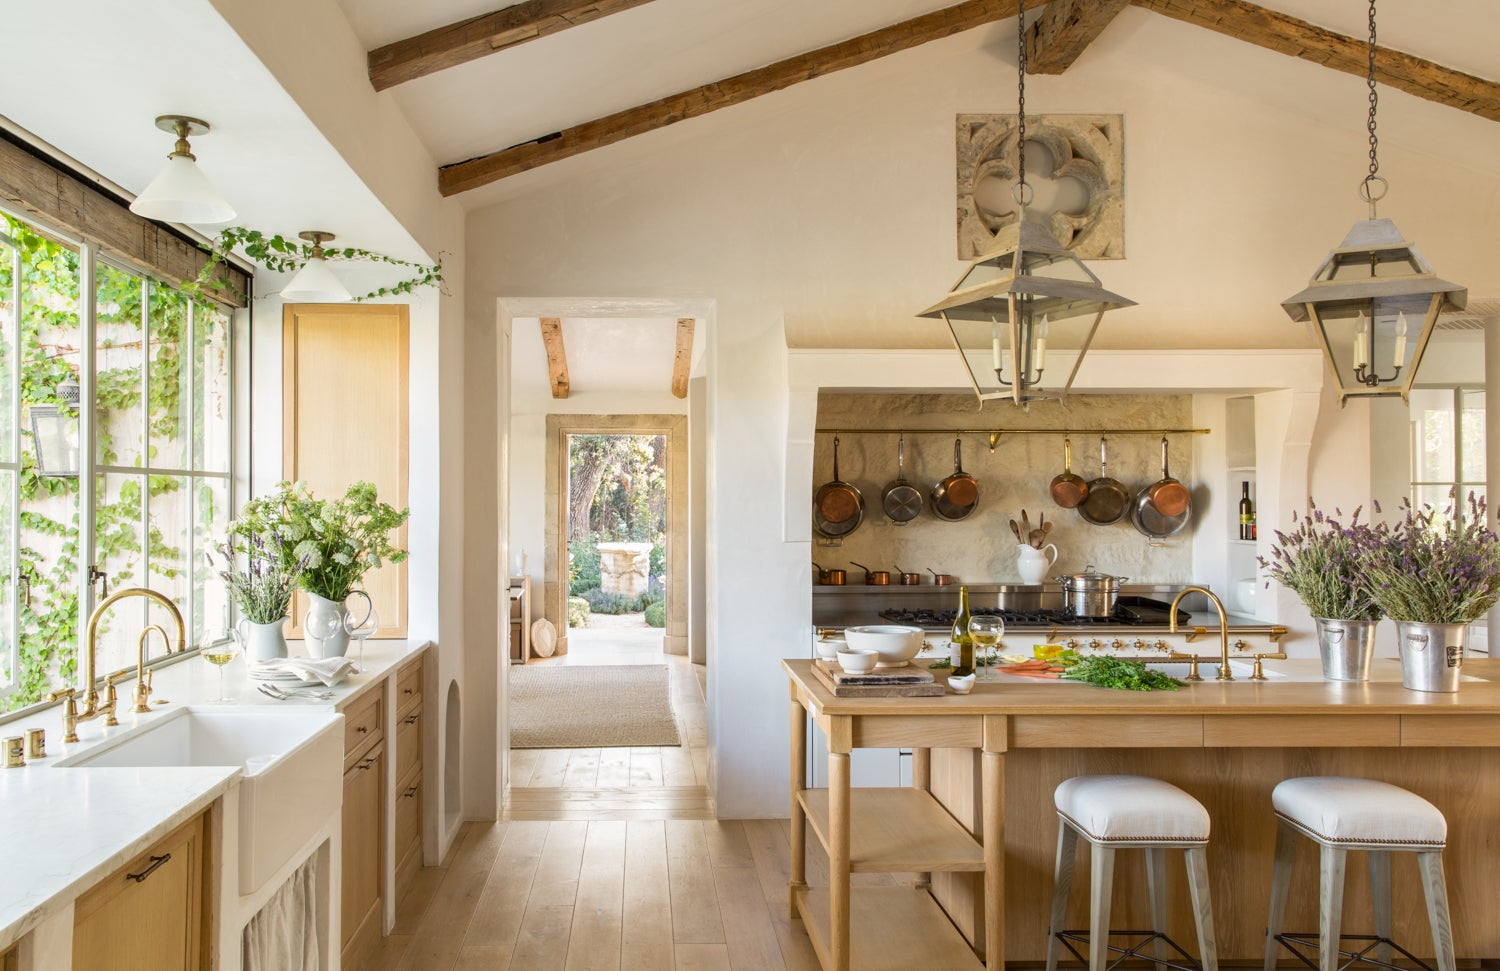 Patina Farm By Giannetti Home On 1stdibs